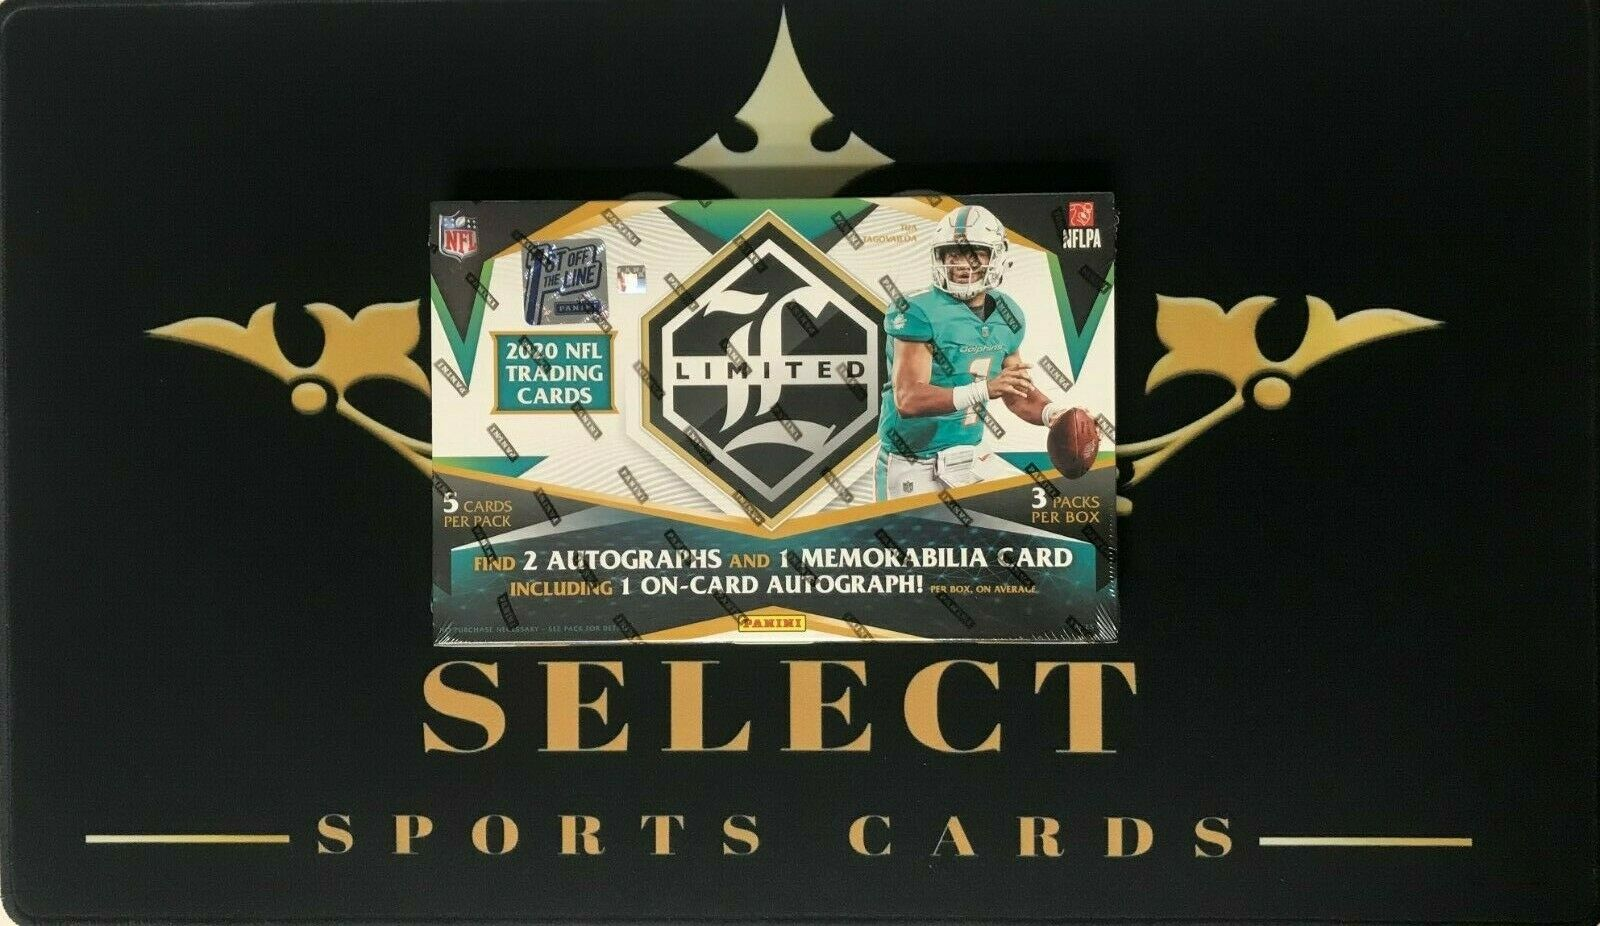 STEELERS 2020 PANINI NFL LIMITED FIRST OFF THE LINE HOBBY BOX TEAM BREAK - $20.50